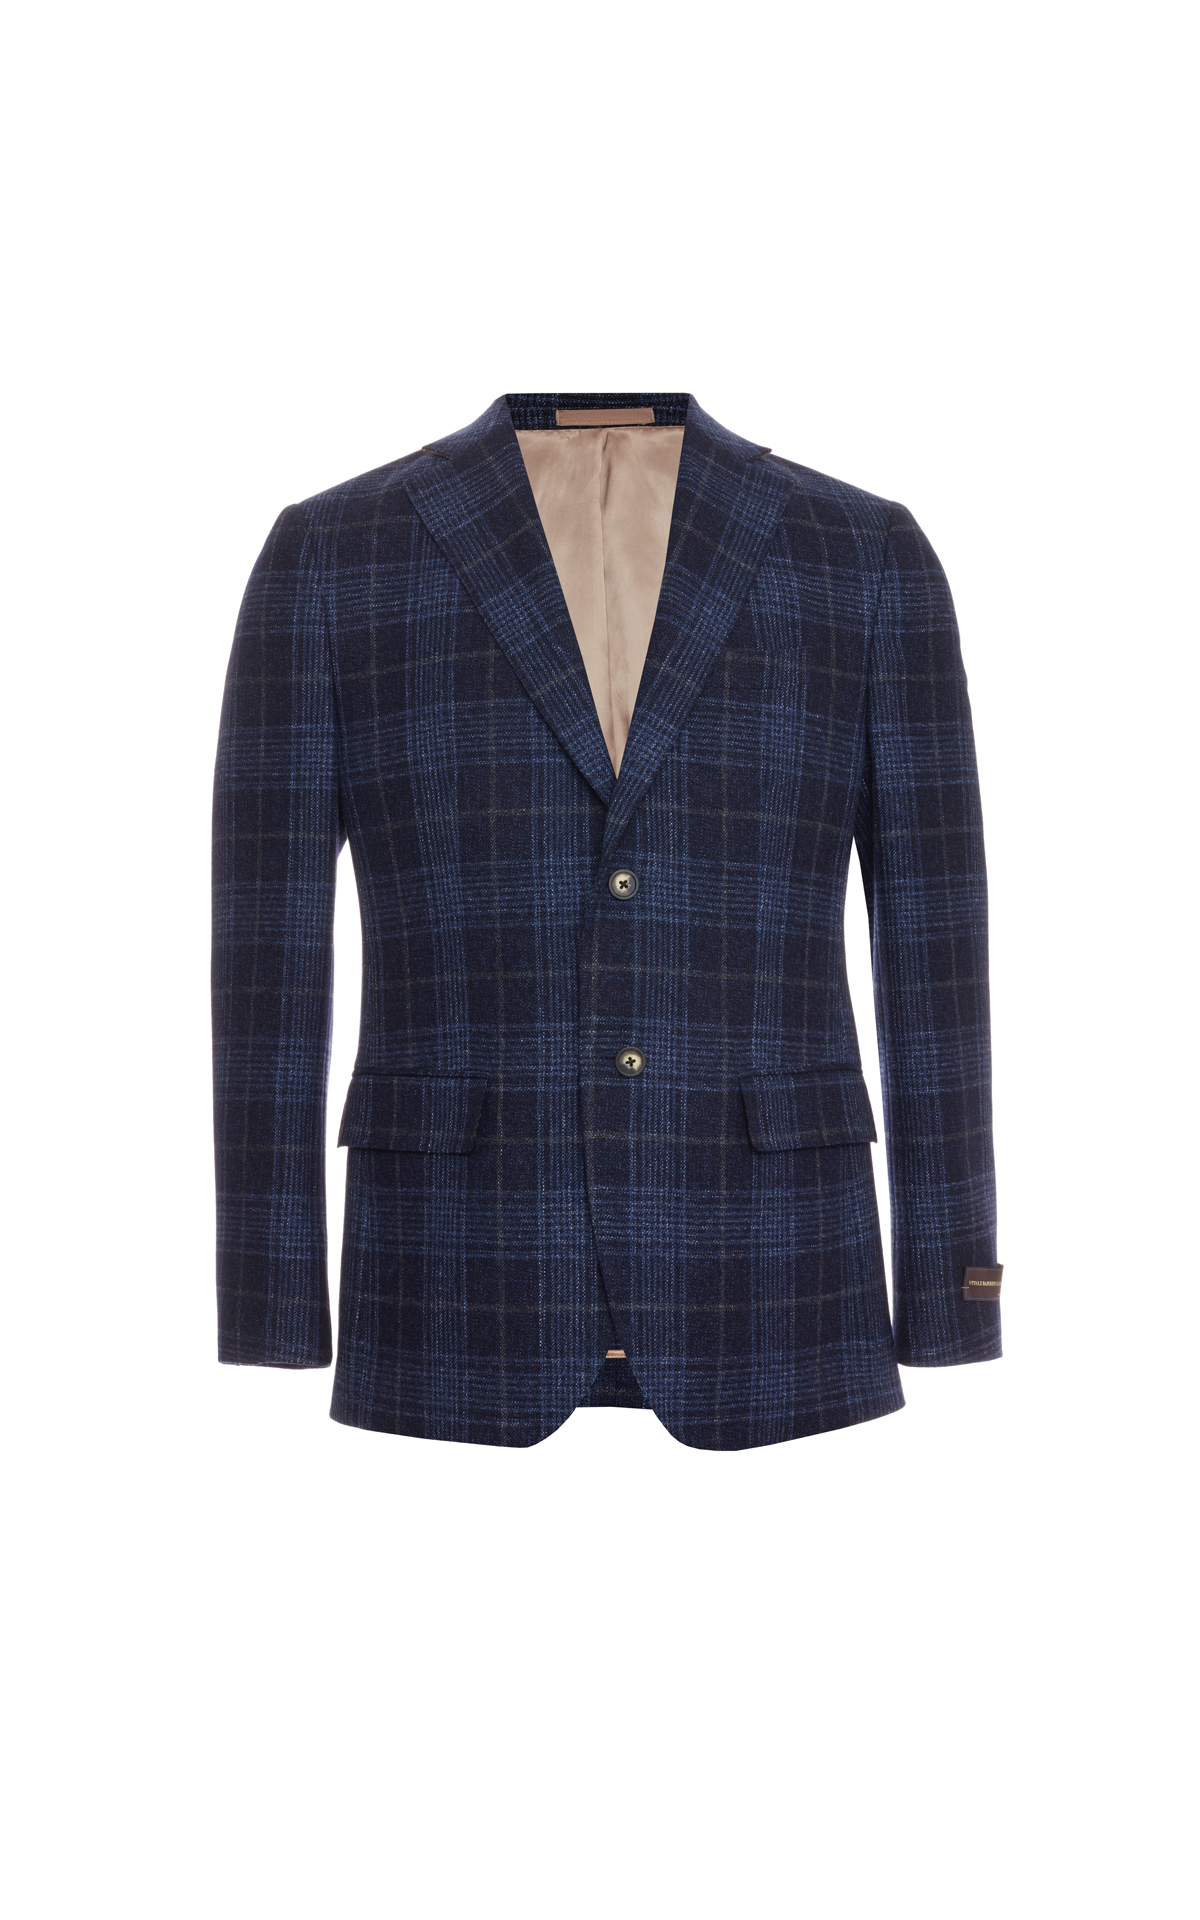 Savoy Taylors Guild Tailored fit blue check jacket from Bicester Village